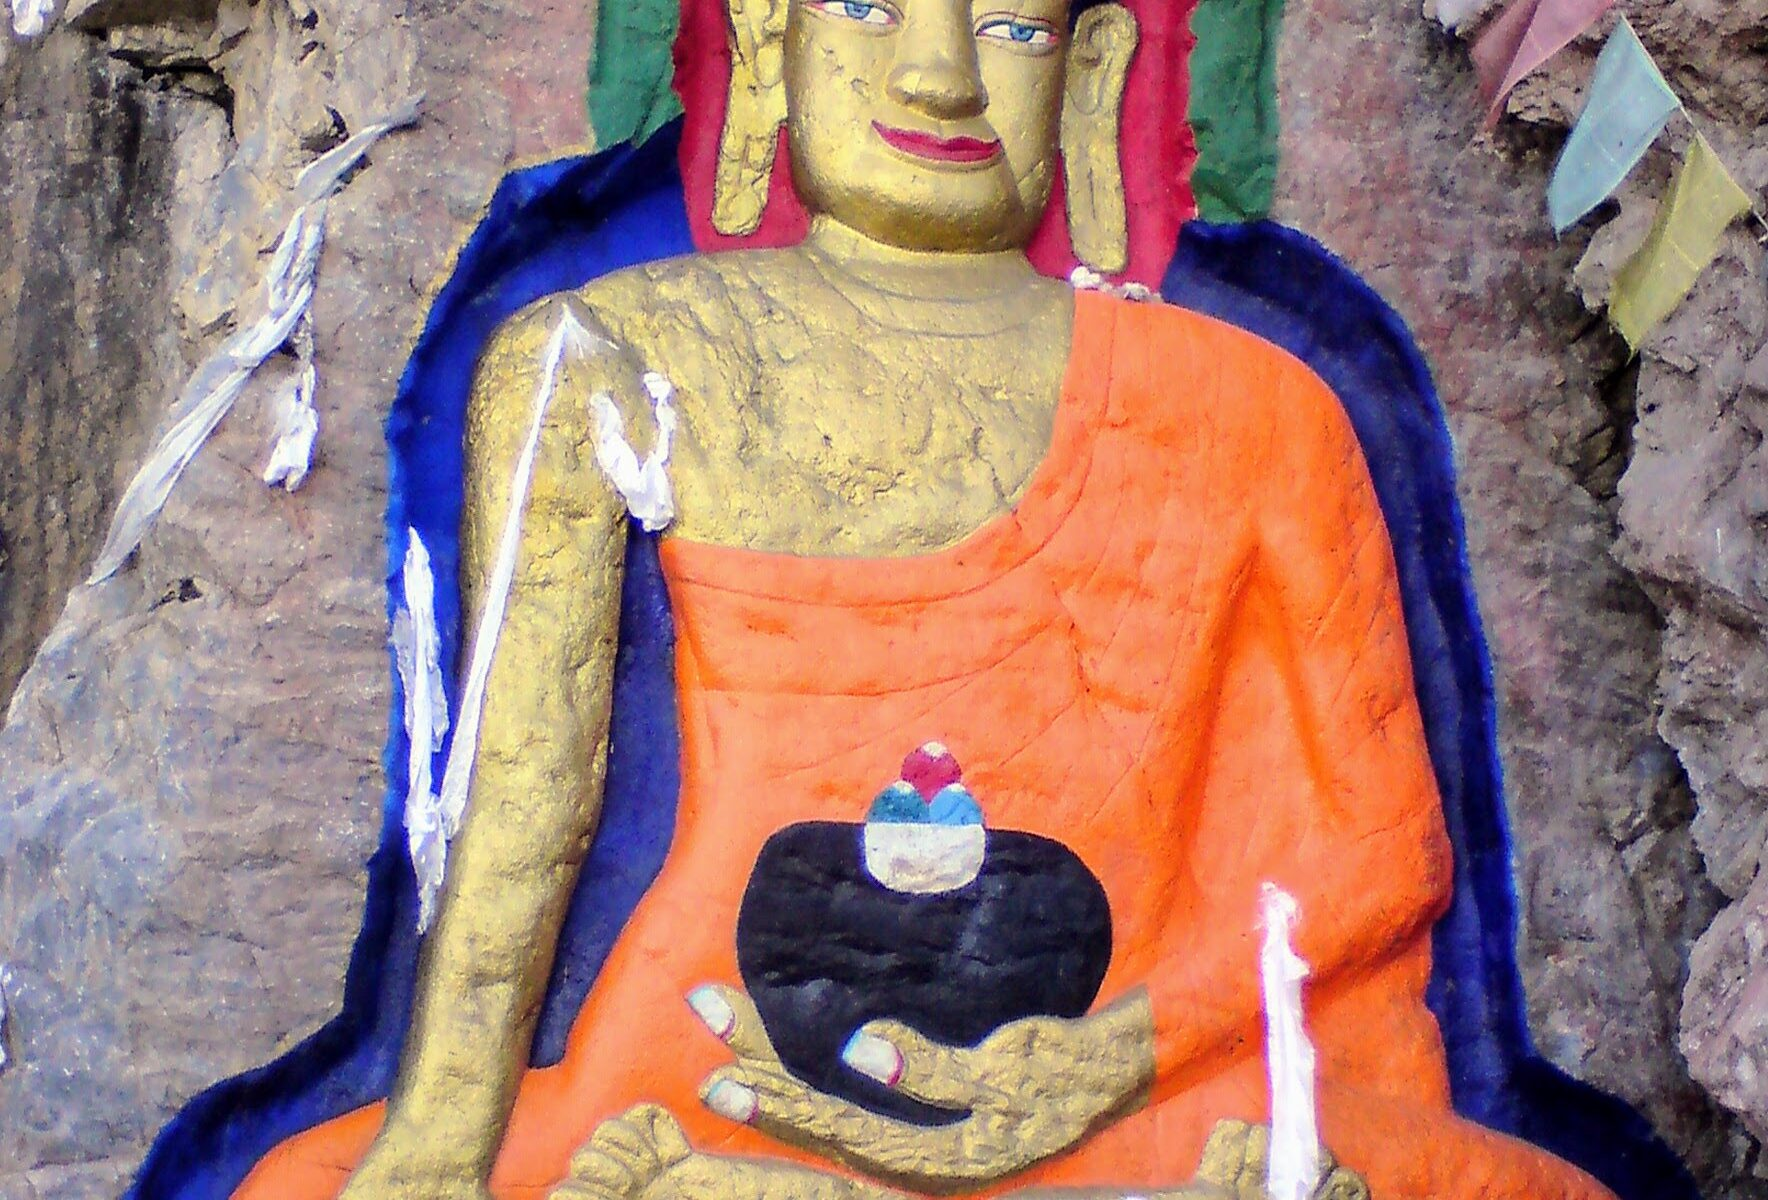 Painted Buddha Carving at Nyethang Drolma Temple, Lhasa, Tibet